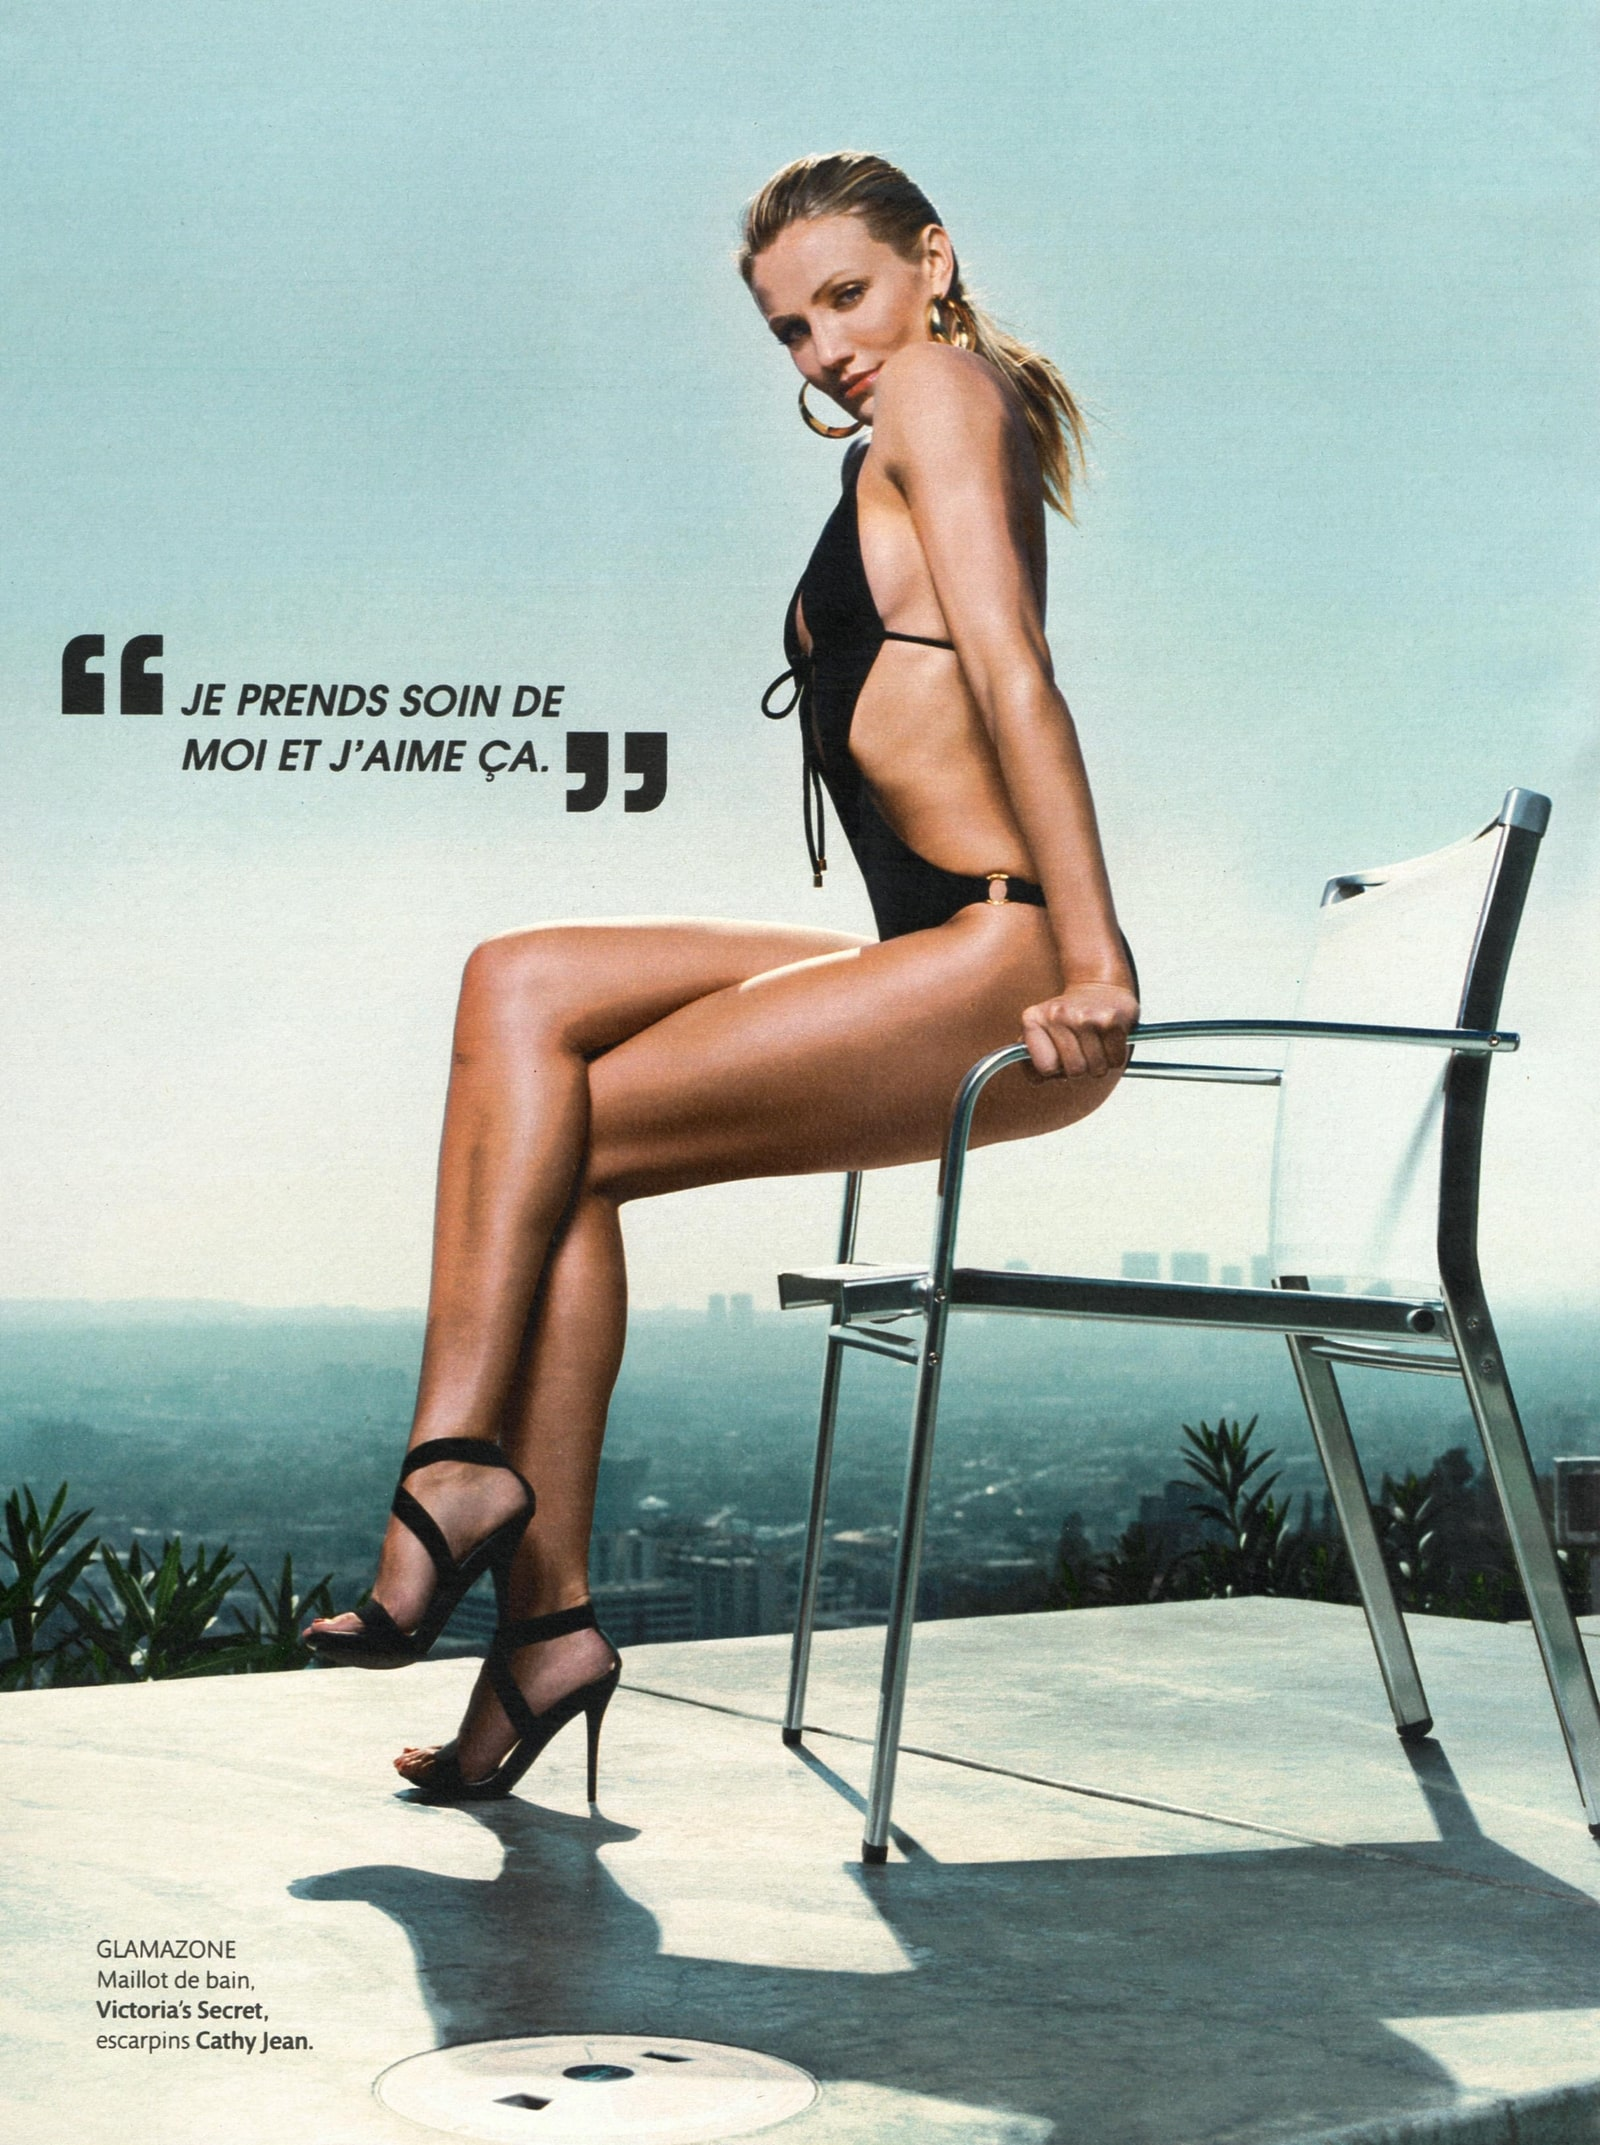 Cameron Diaz in Sexy Swimsuit in French Magazine Madame Figaro-04-min